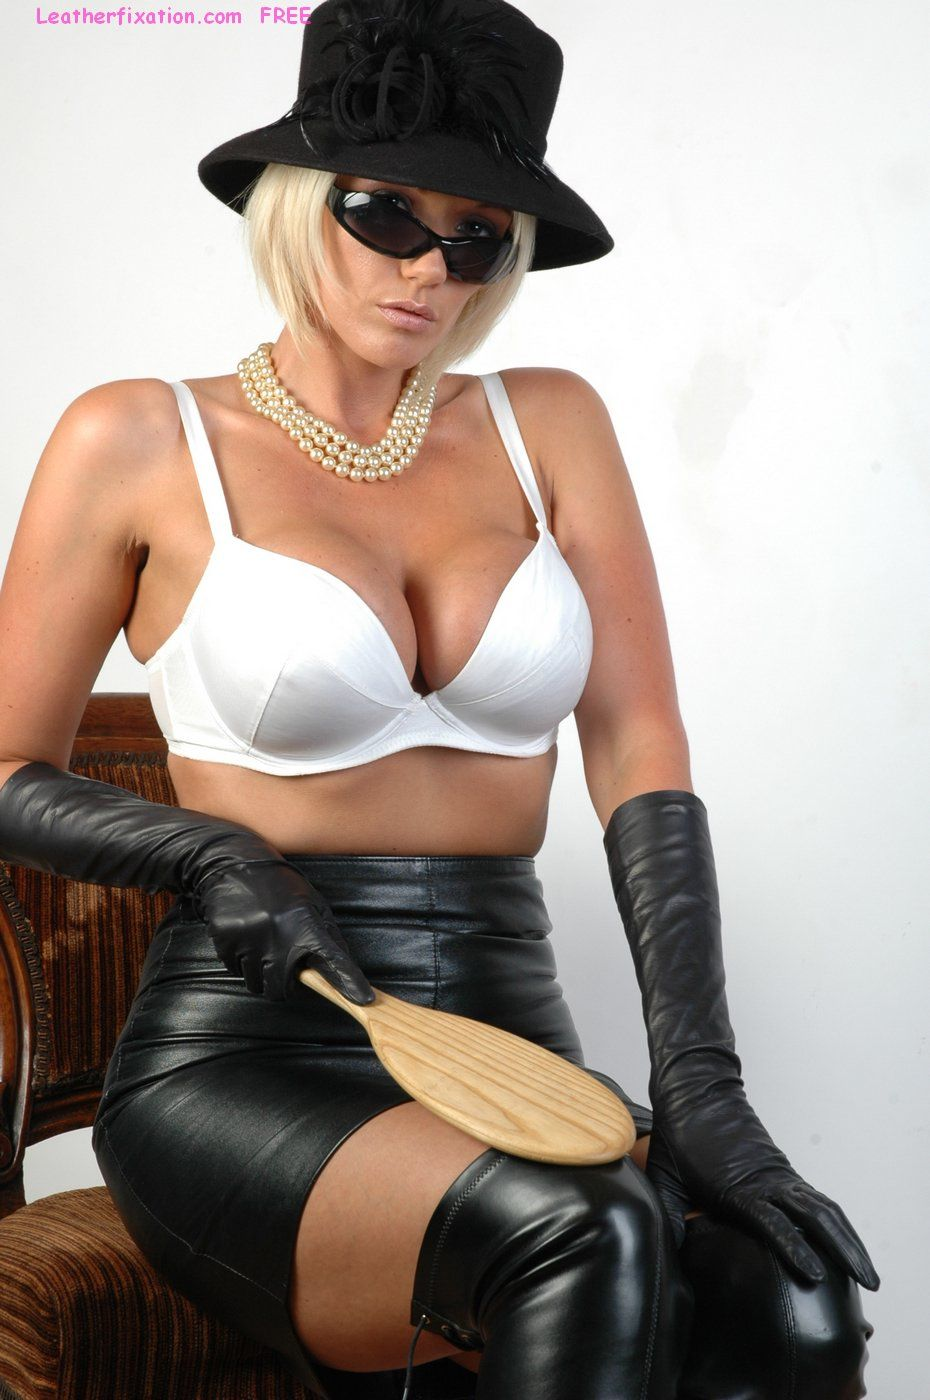 Opinion Lucy zara leather boots thank